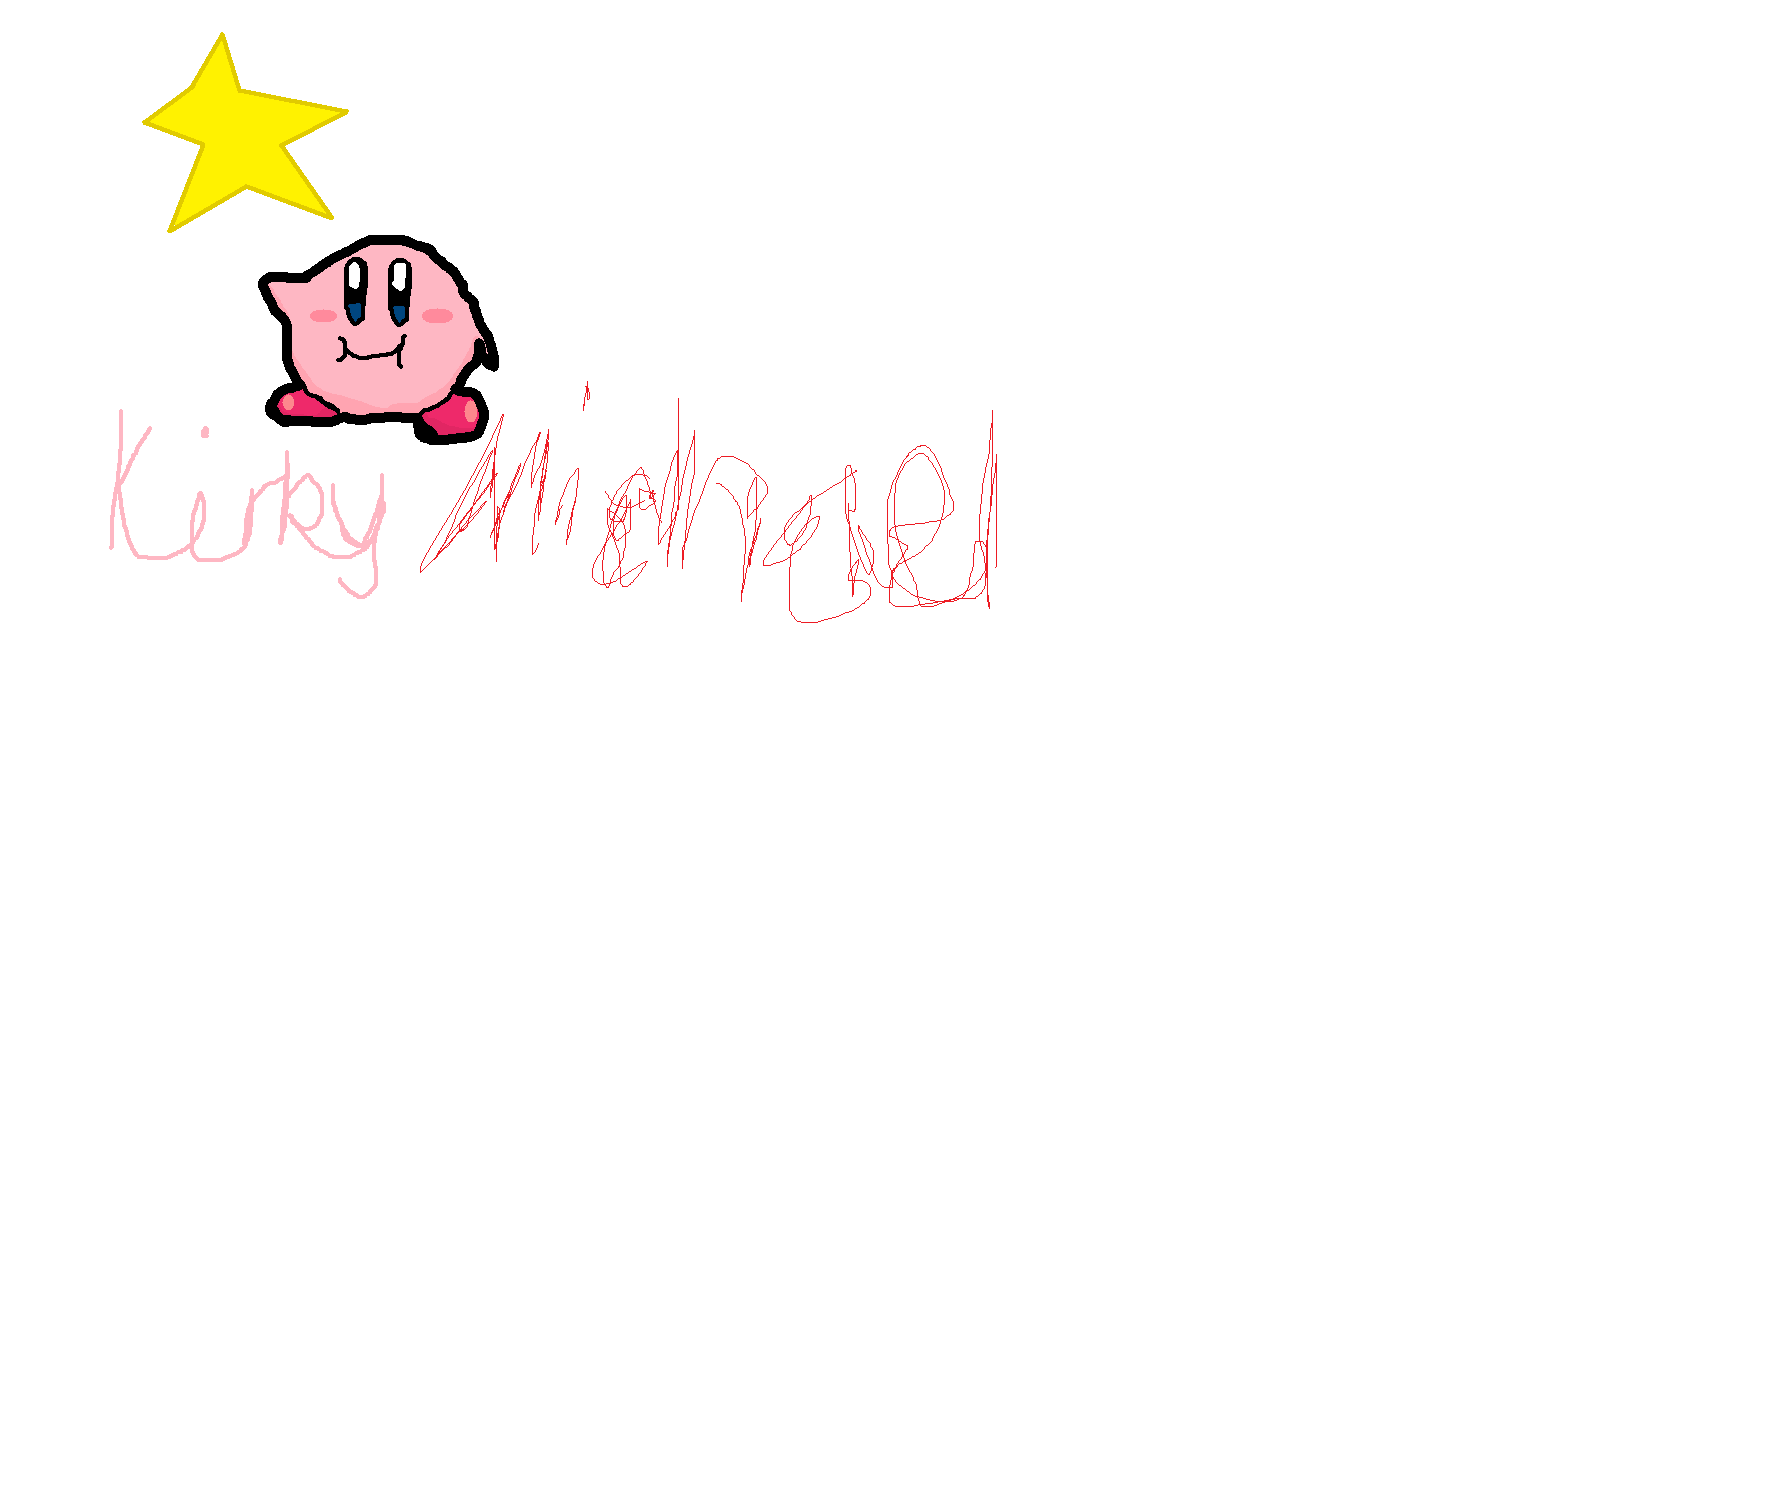 Super Tougth Pink Puff Kirby